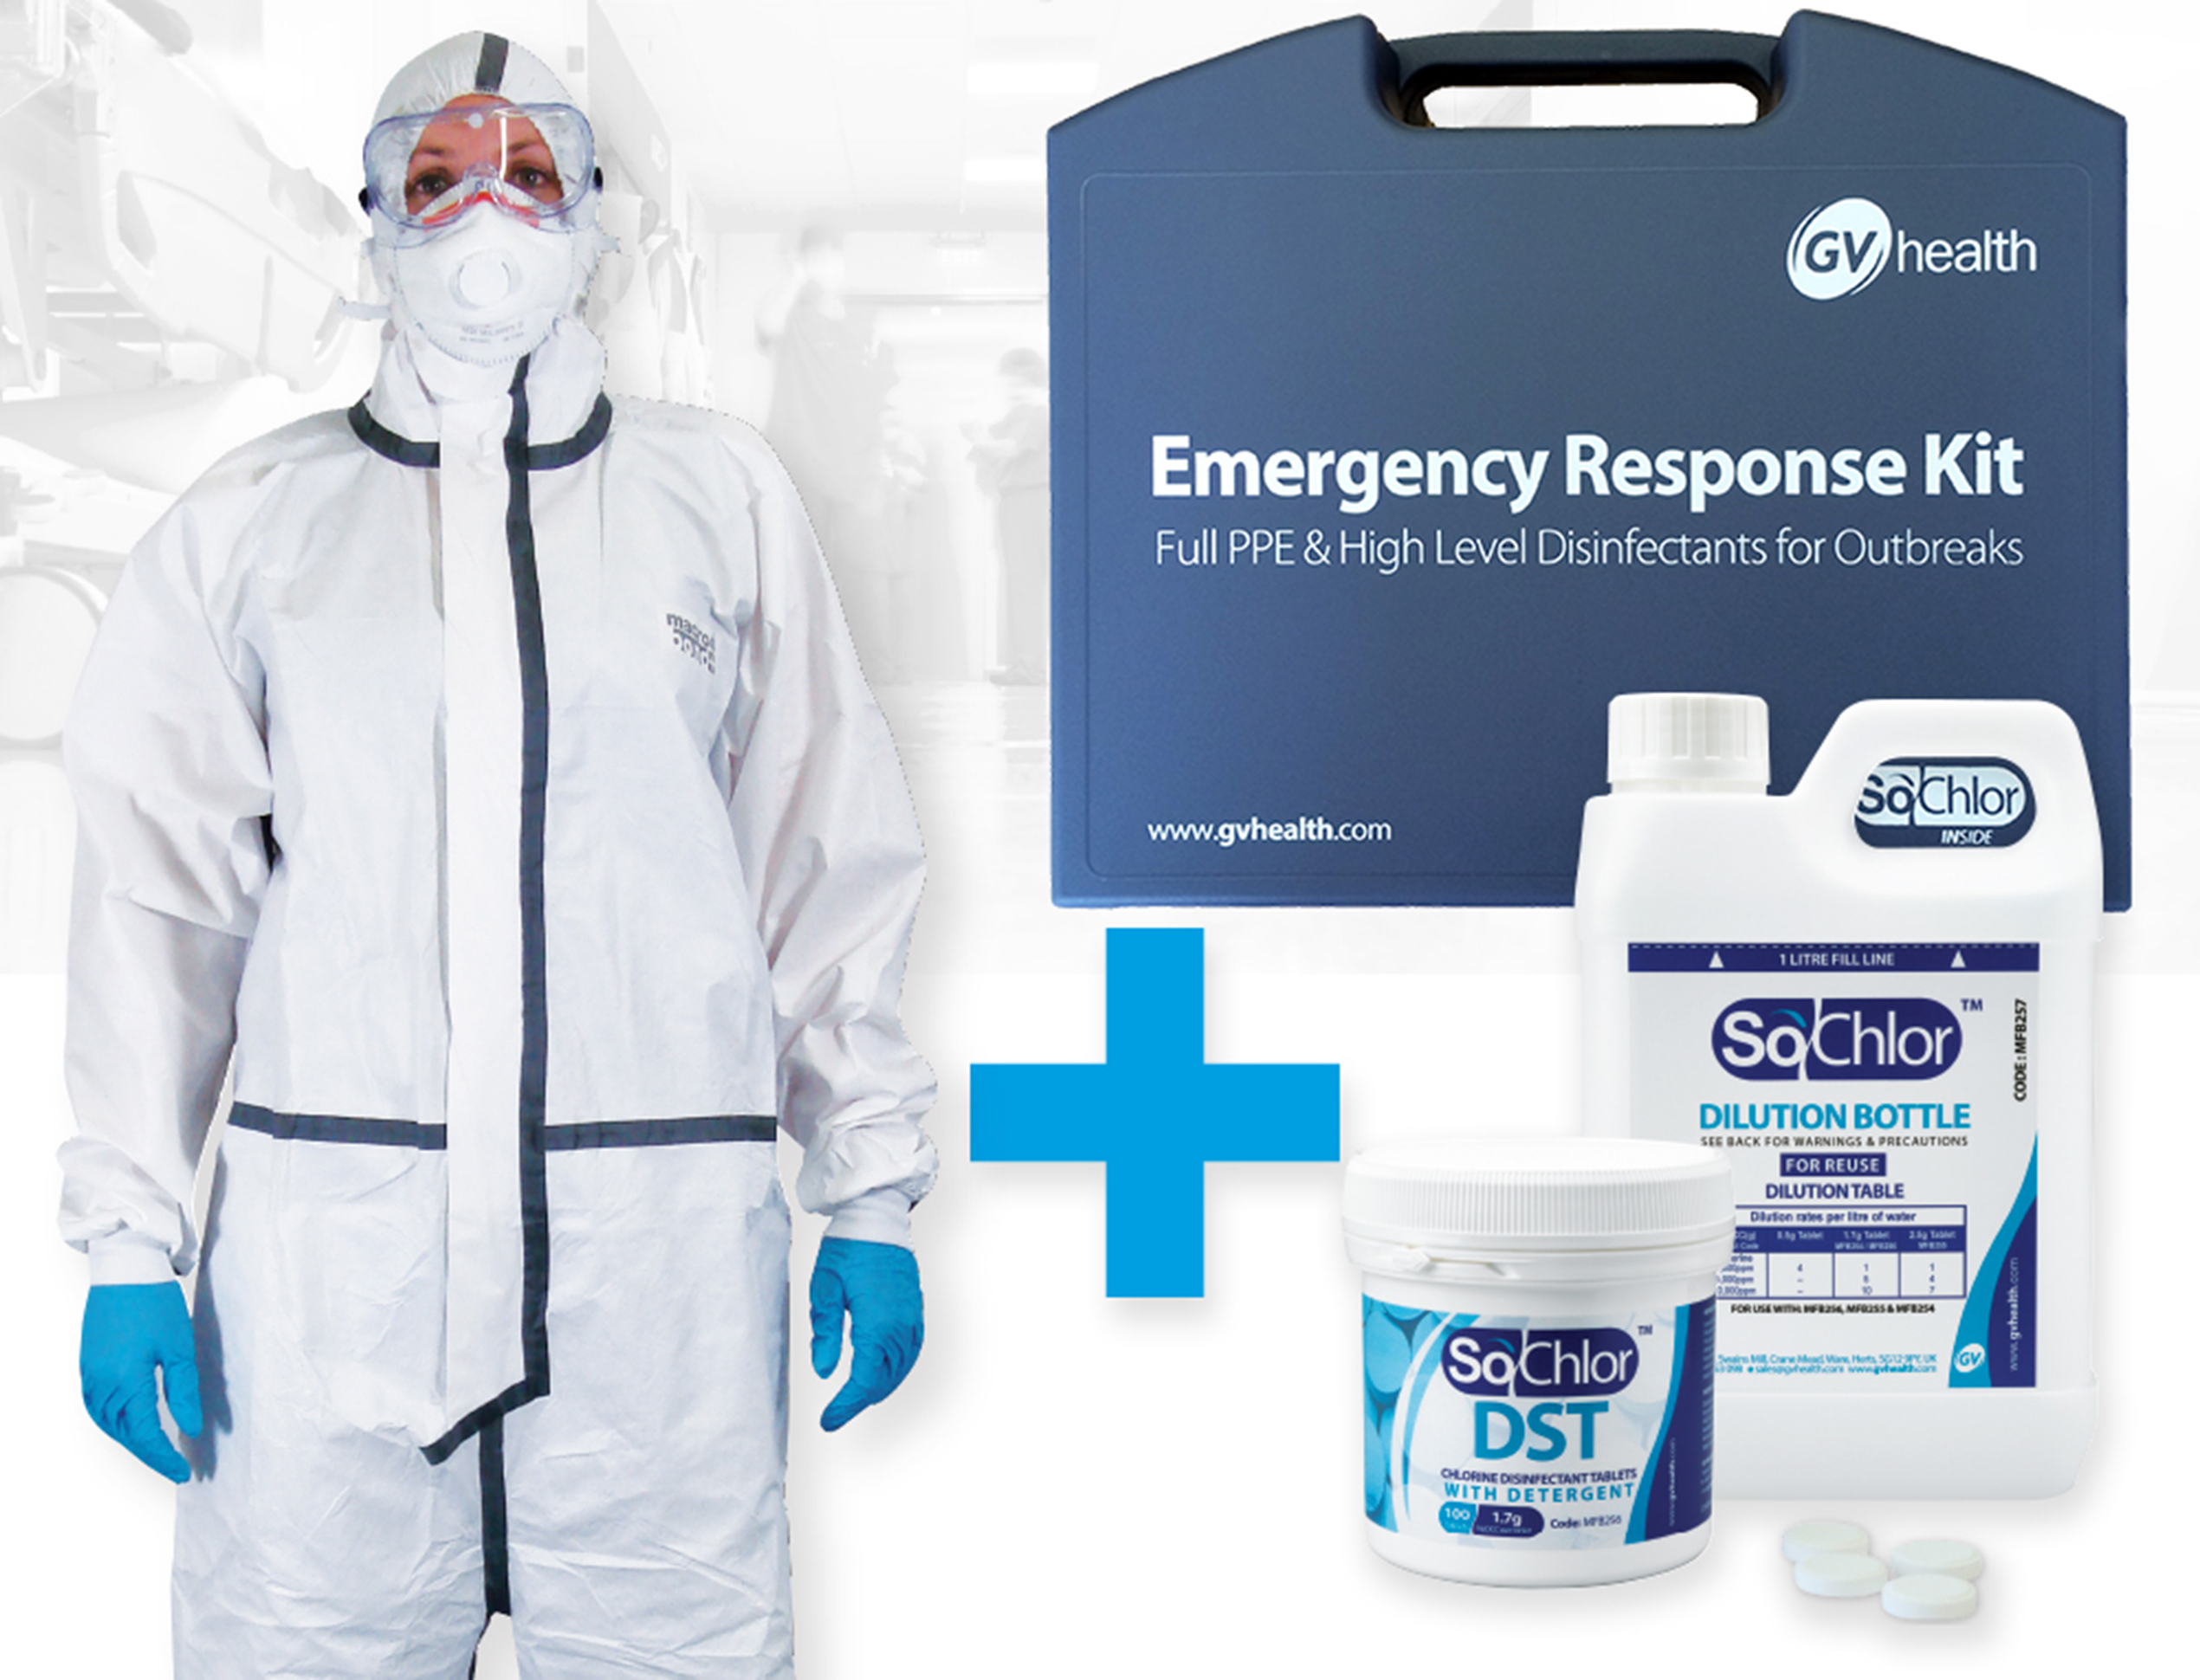 GV Health Emergency Containment & Disinfection Kit Full PPE Type 4,5,6 Coverall thumbnail image 1